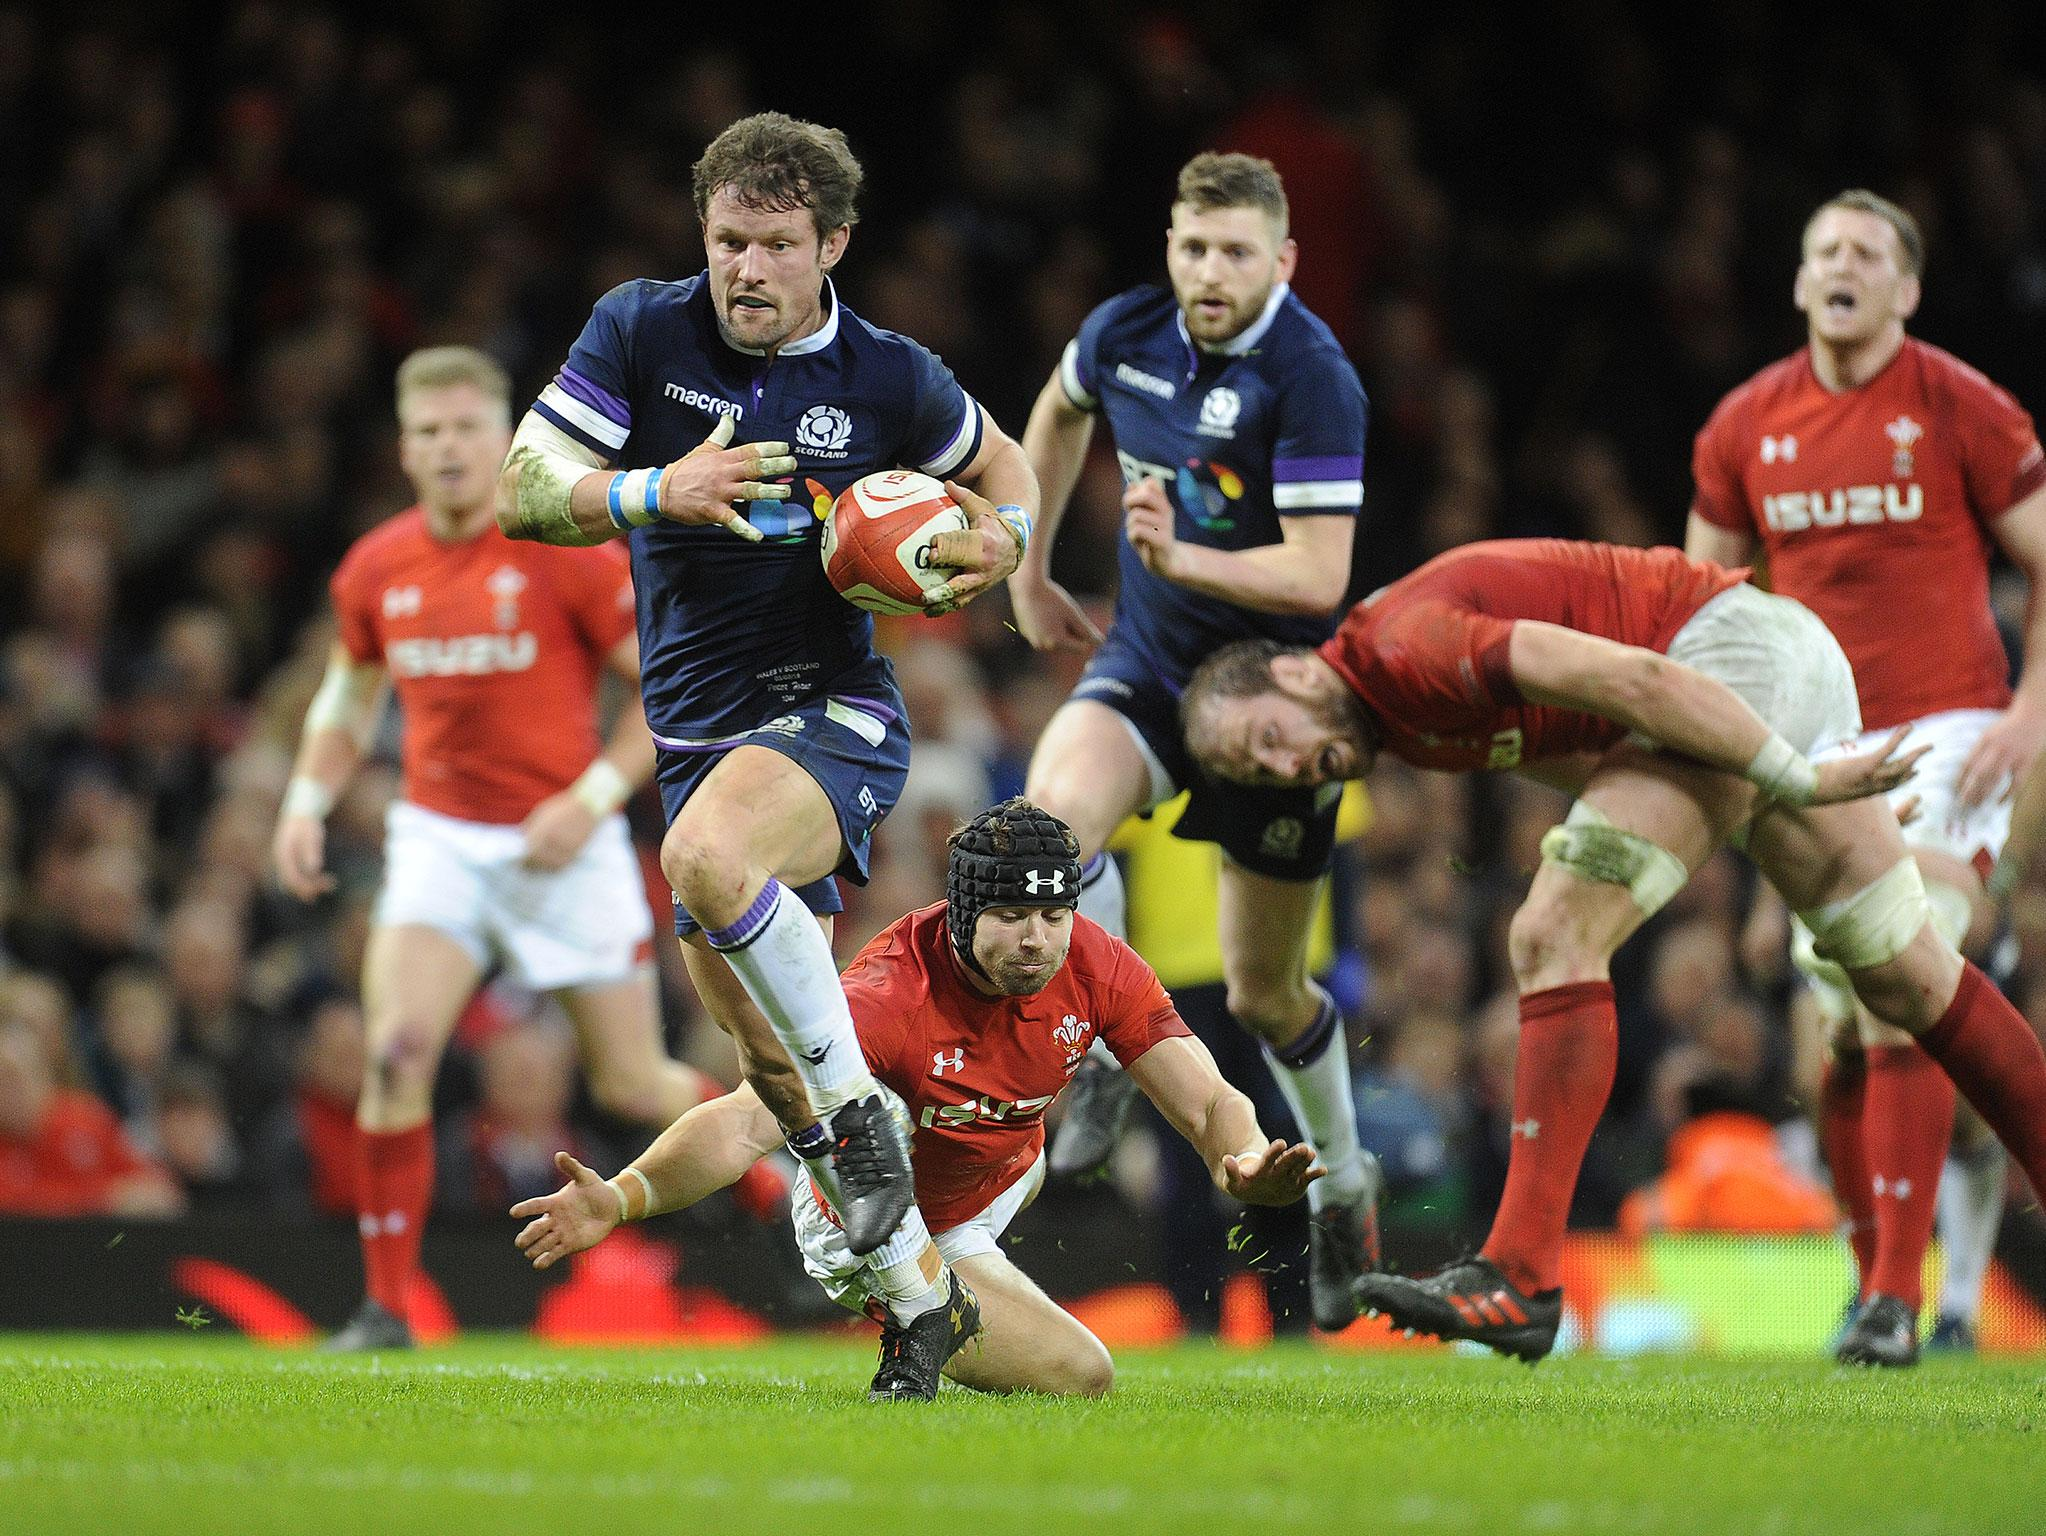 Peter Horne confident Scotland will bounce back against France after defeat in Wales